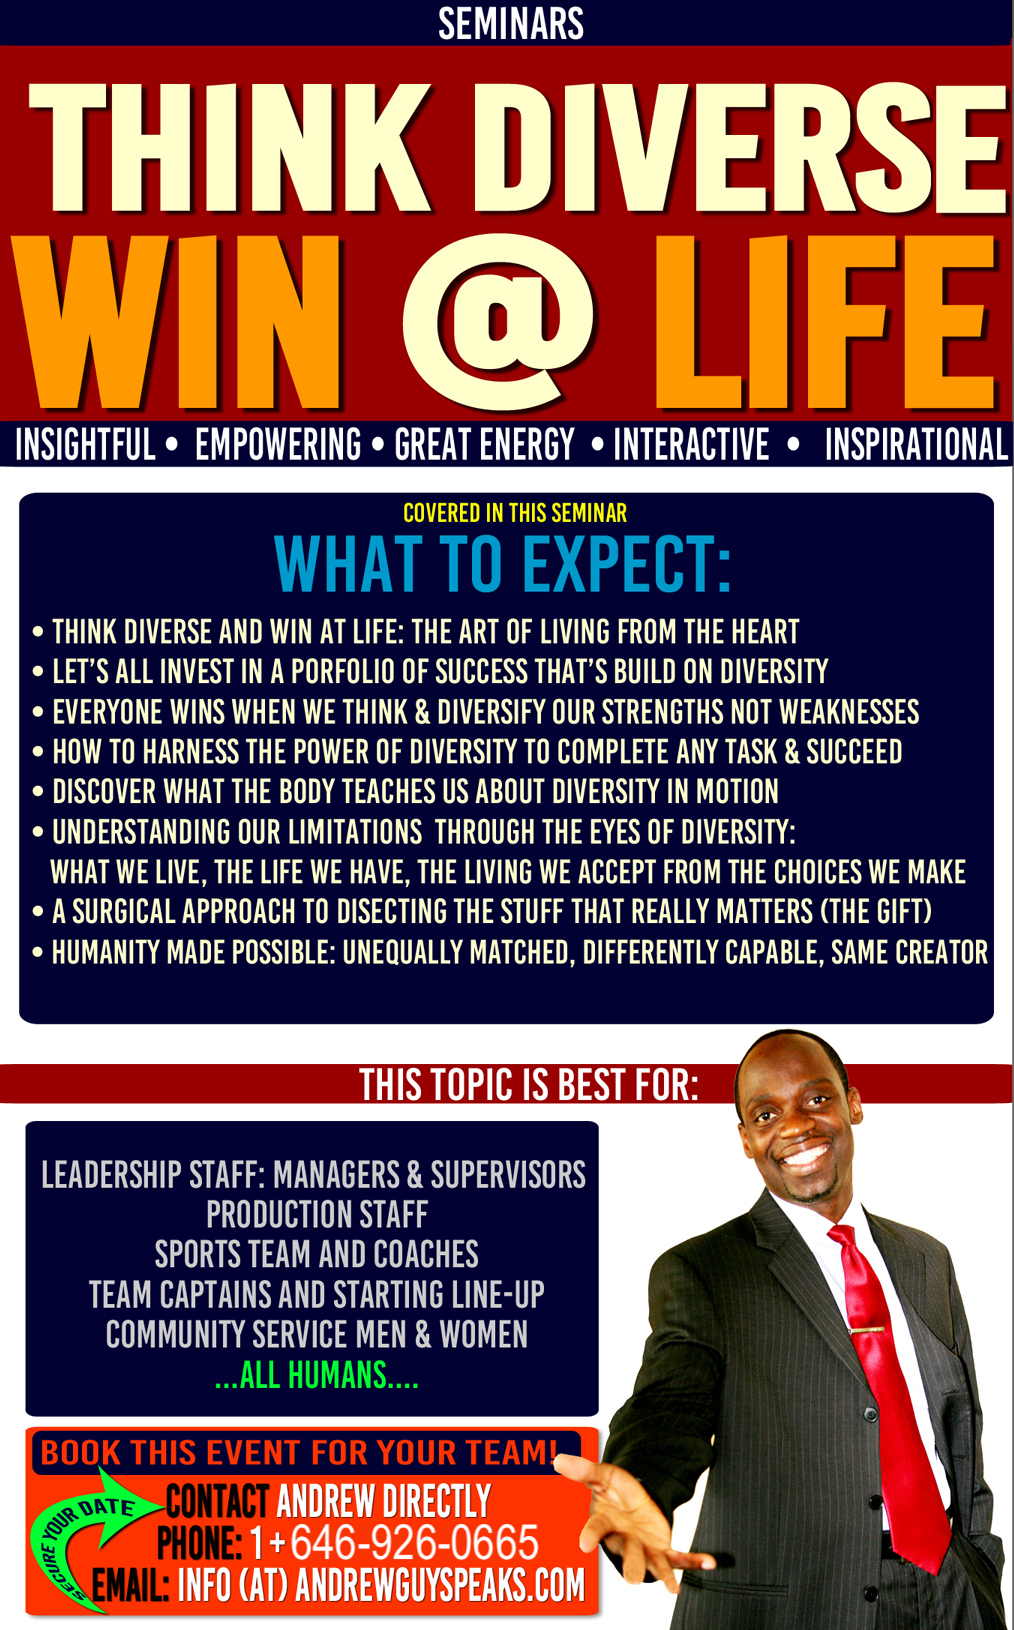 DEI, WIN AT LIFE,corporate speaker, andrewguy, conference speaker